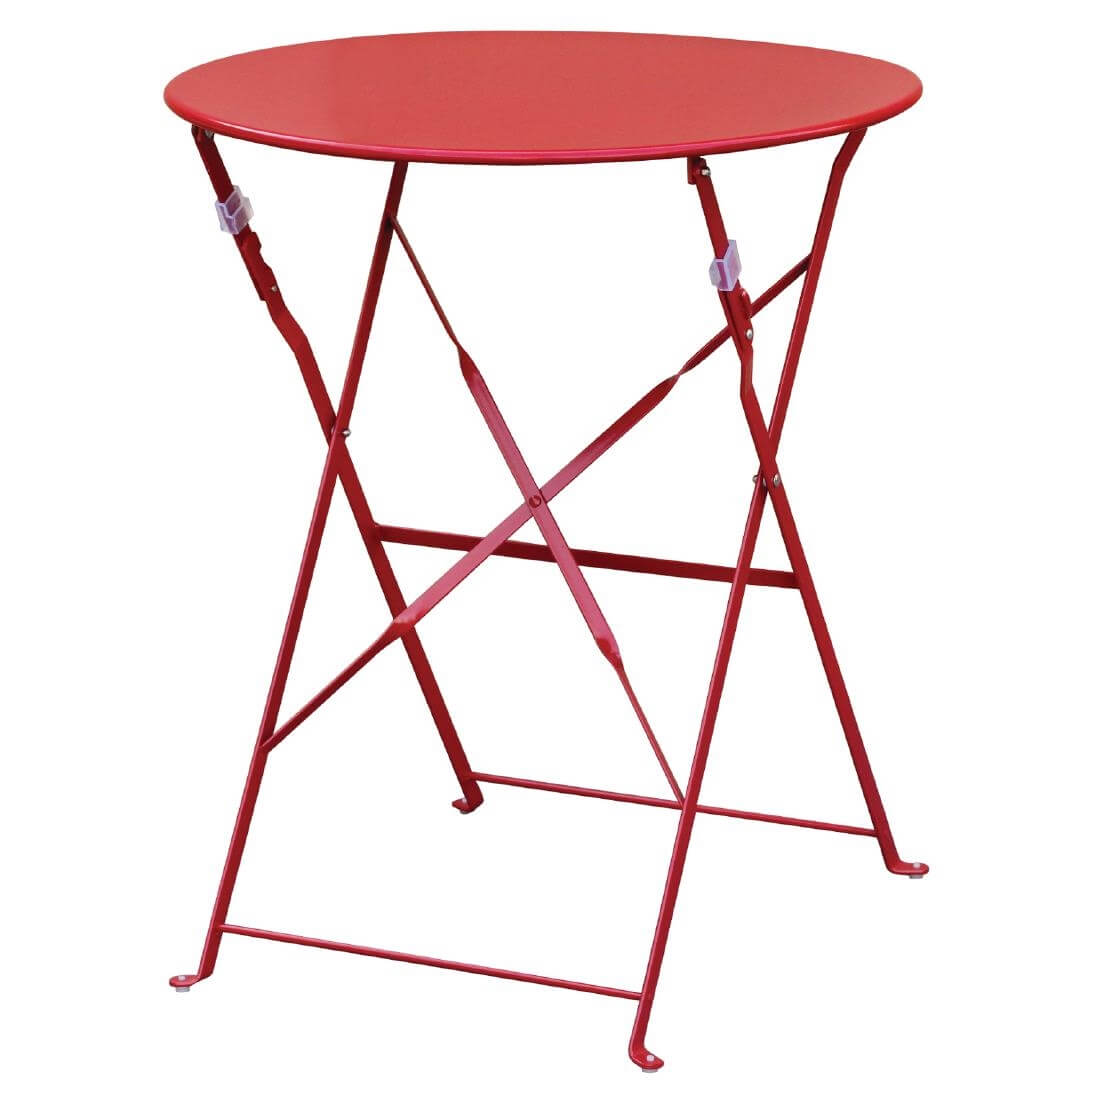 Steel Folding Table Round - Red